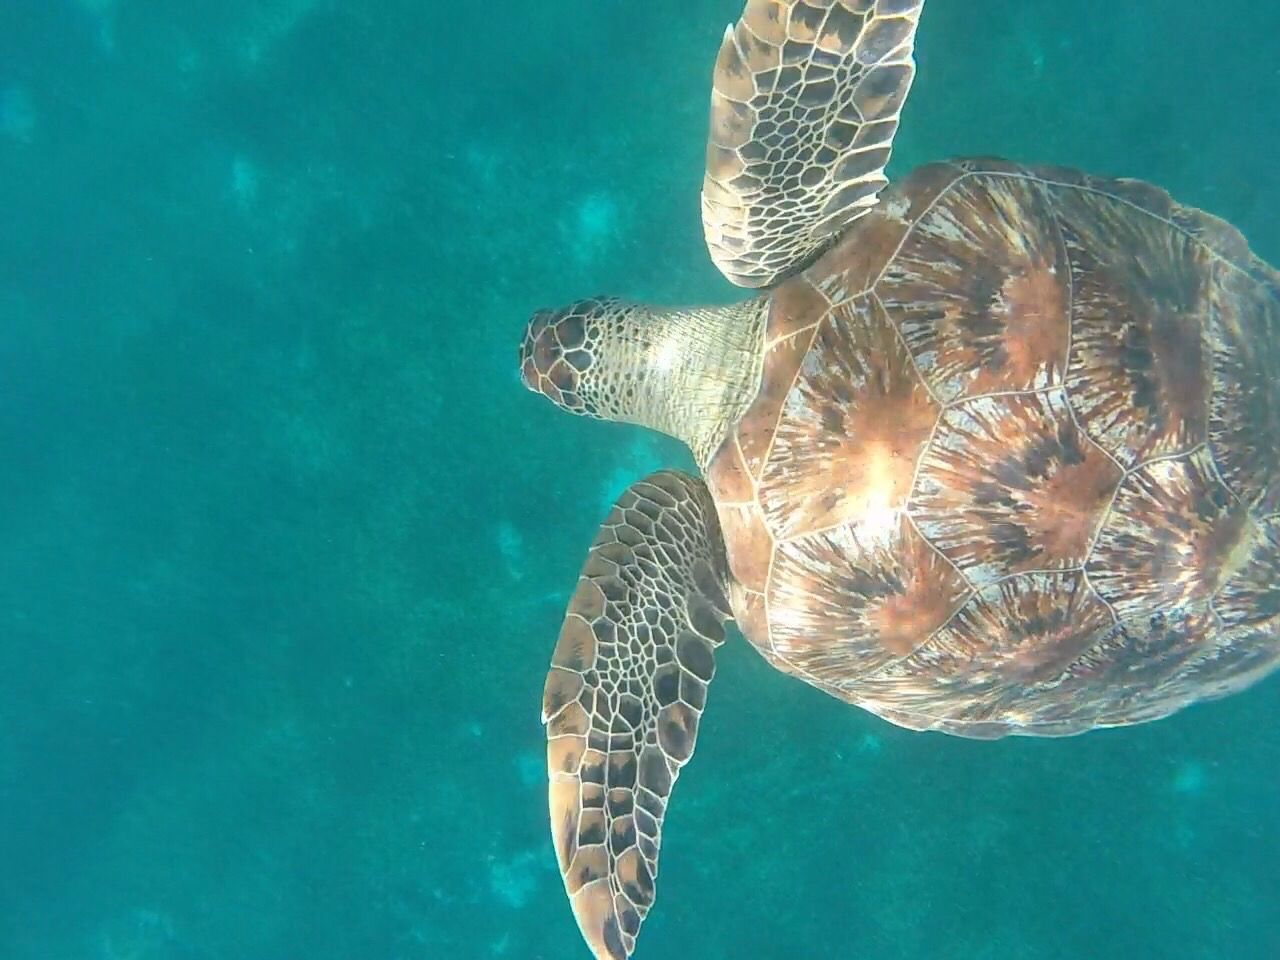 Travel Destinations Martinique Underwater Turtle UnderSea Animal Themes One Animal Water Sea Life Swimming Sea Nature Animals In The Wild Sea Turtle Animal Wildlife Reptile Beauty In Nature No People Close-up Outdoors Day https://youtu.be/2fYSAutD-zU